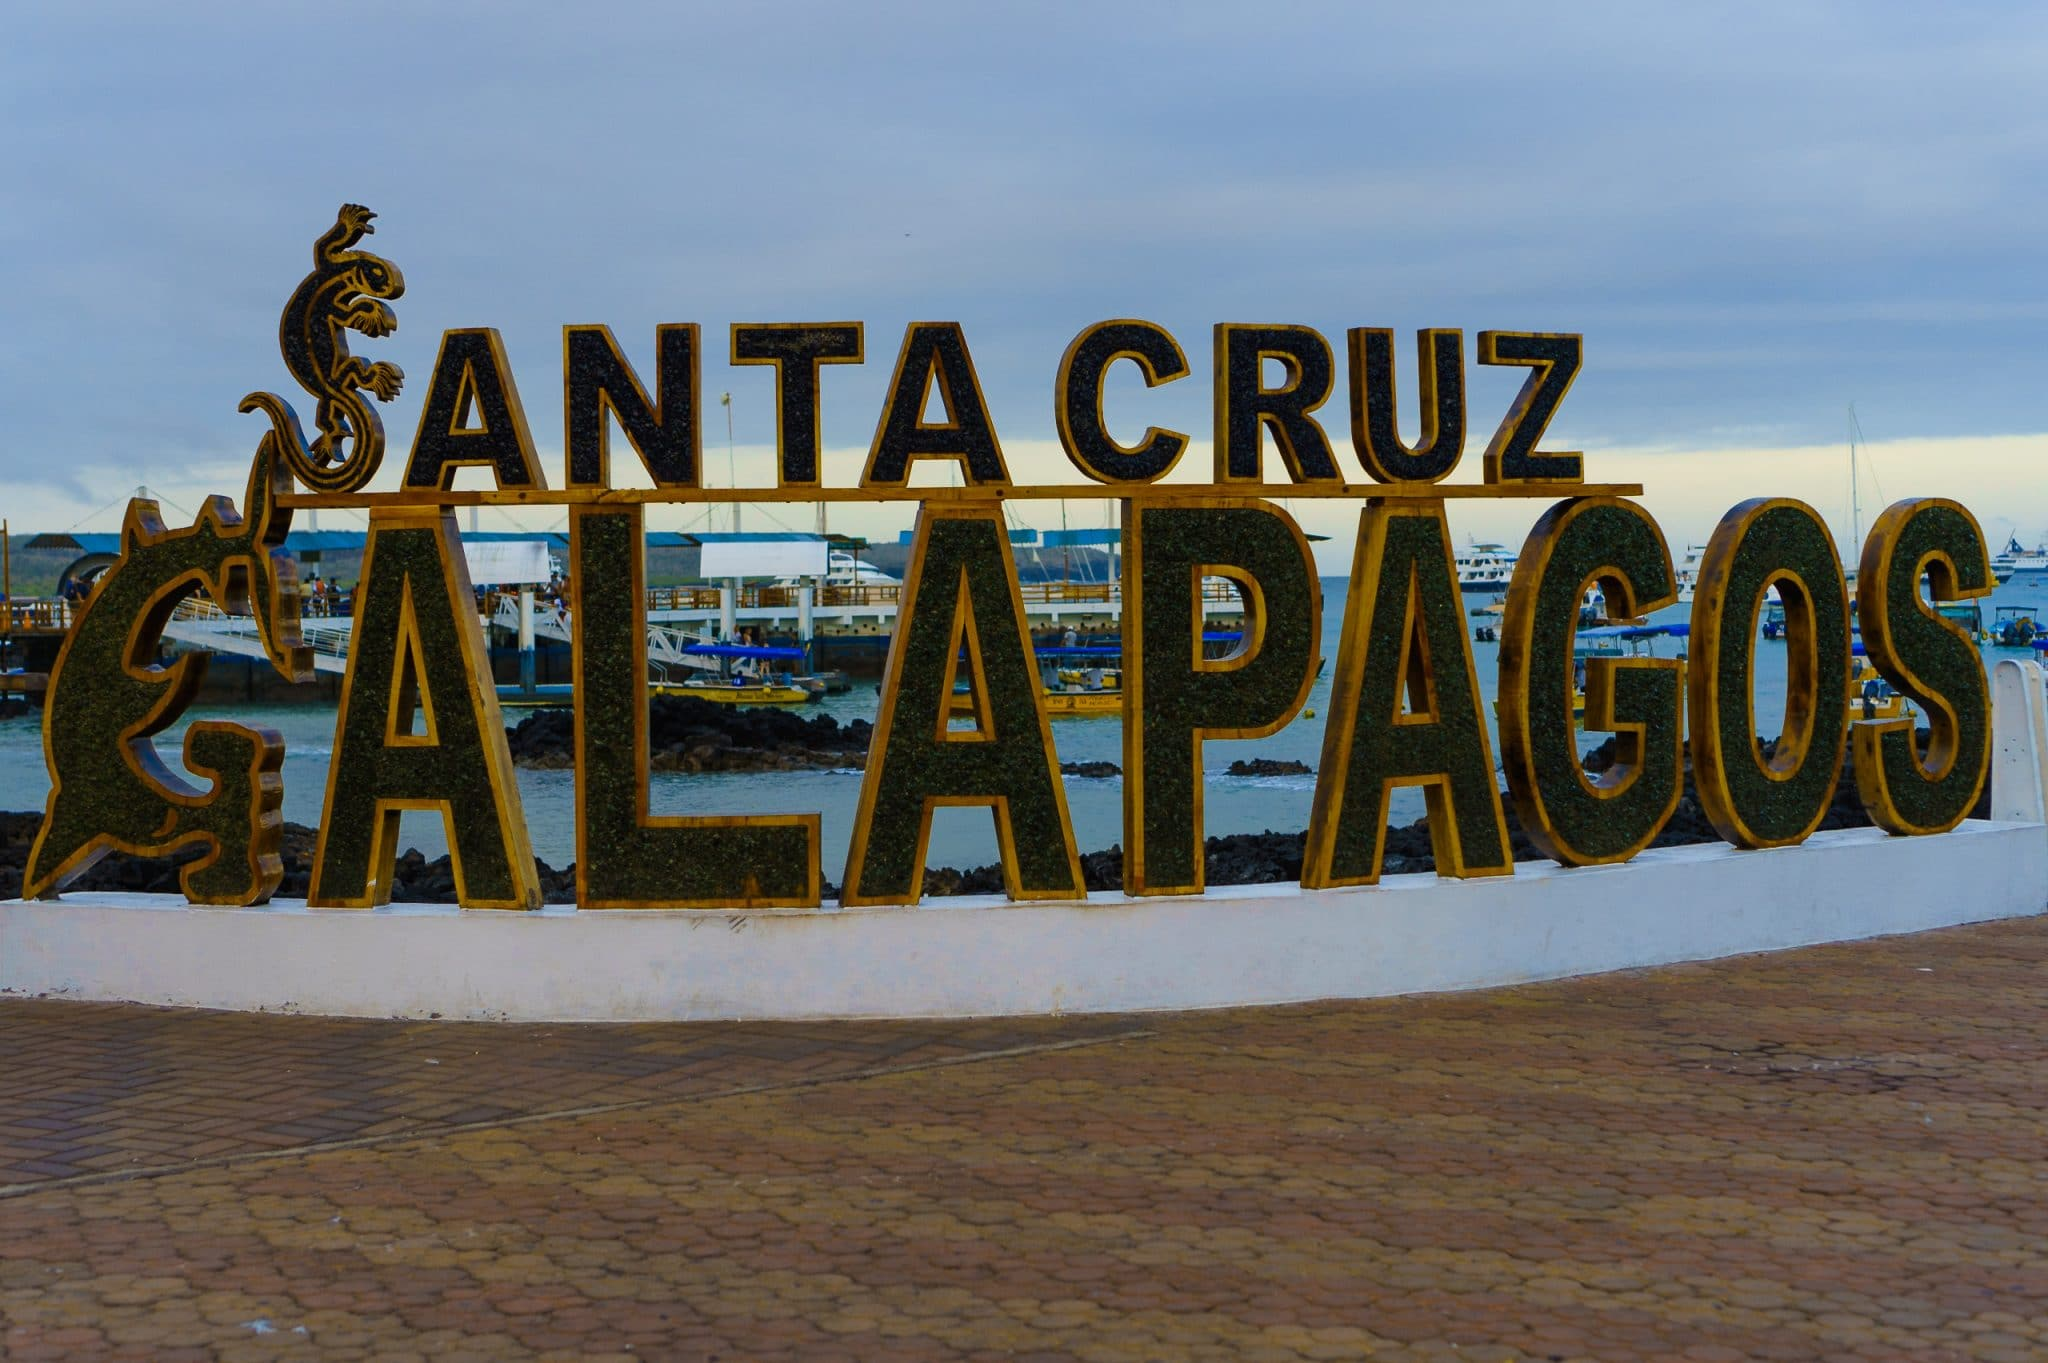 Santa Cruz, Galapagos Islands - The Starting Point of Most Land Based Tours